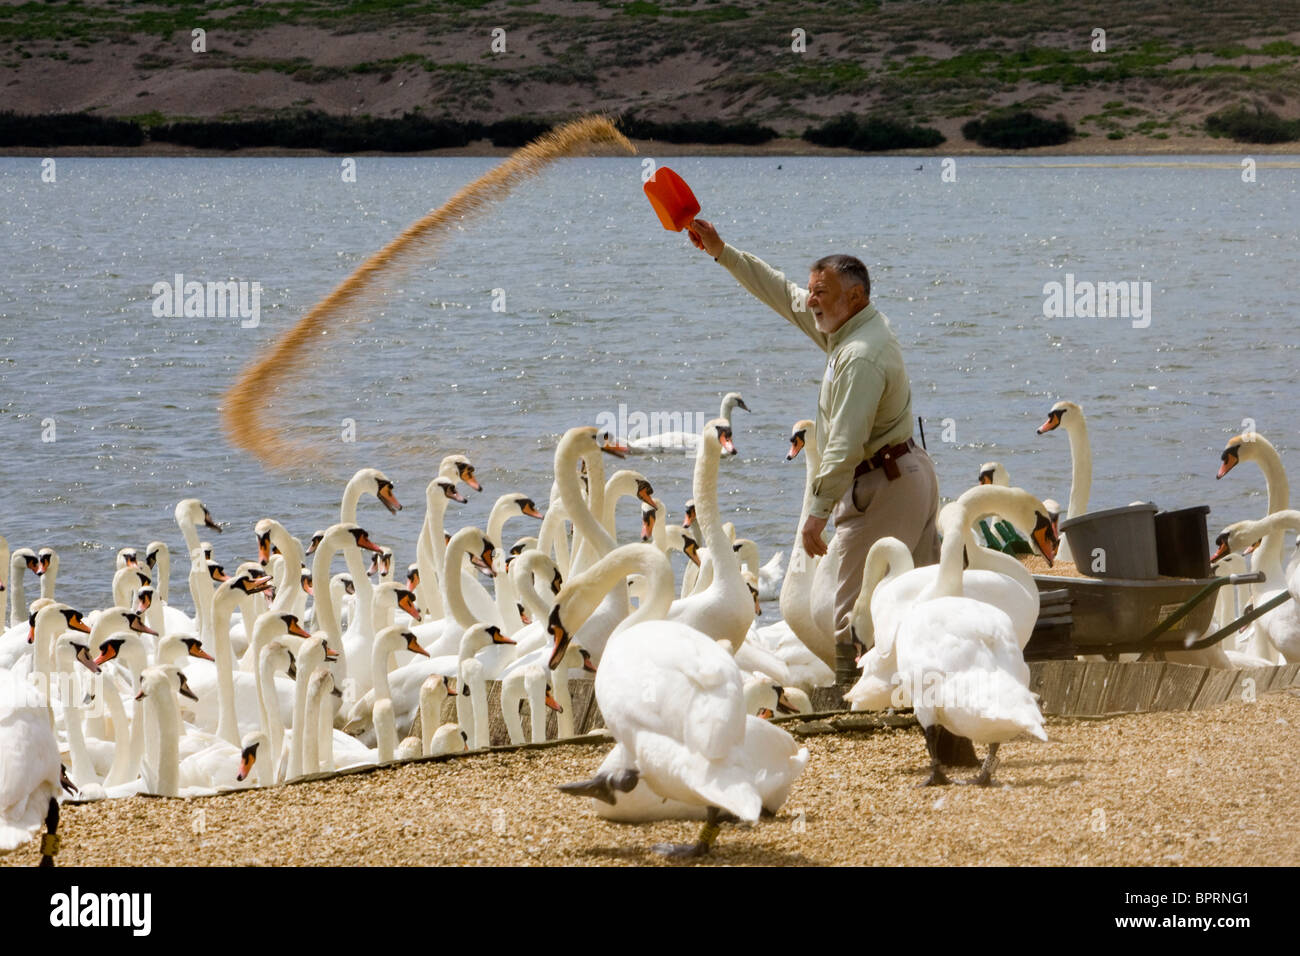 Keeper feeding mute swans at Abbotsbury Swannery in Dorset - Stock Image